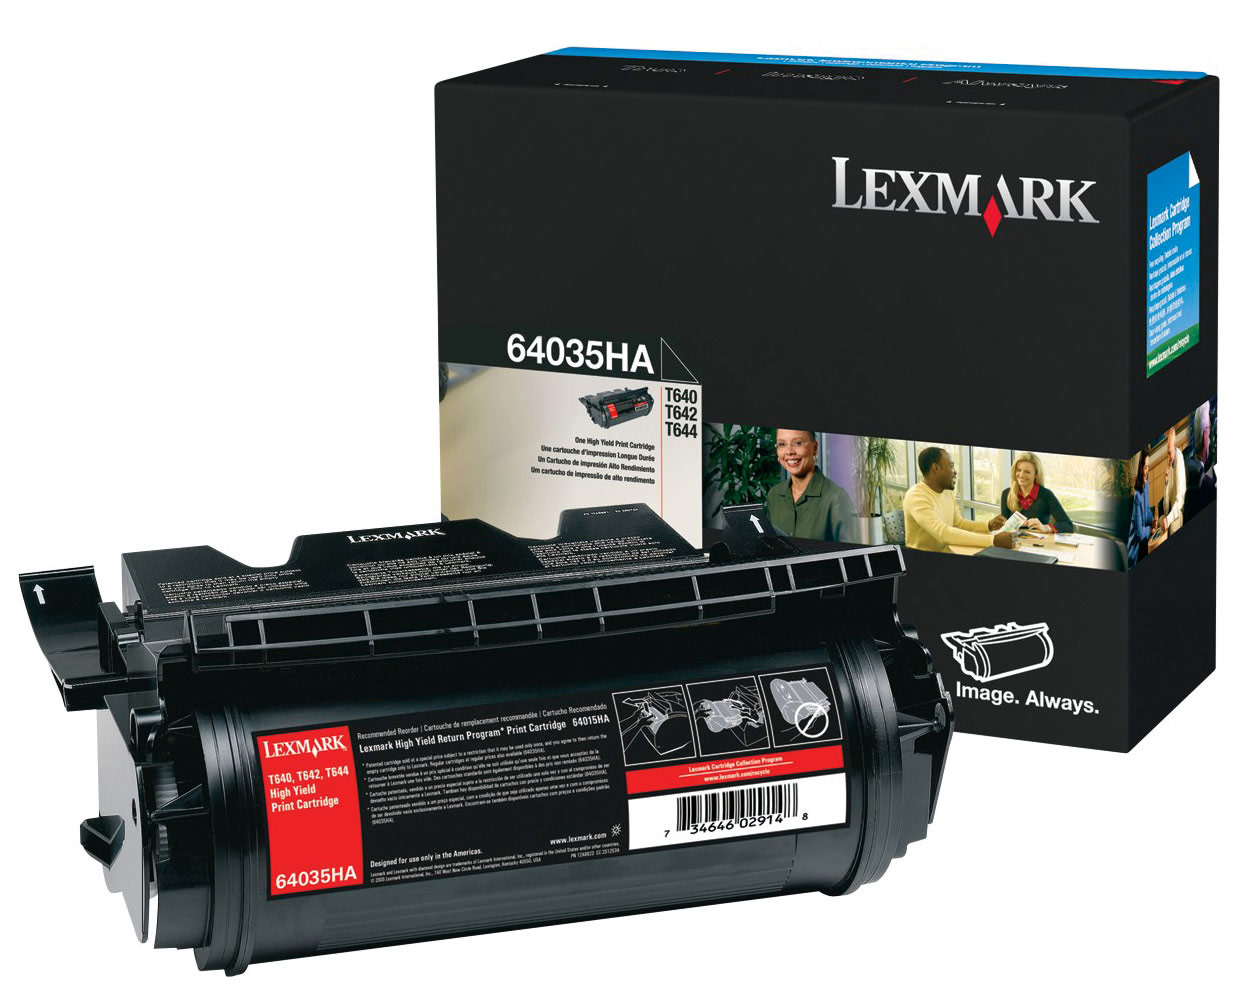 Lexmark 64035HA  printer cartridge